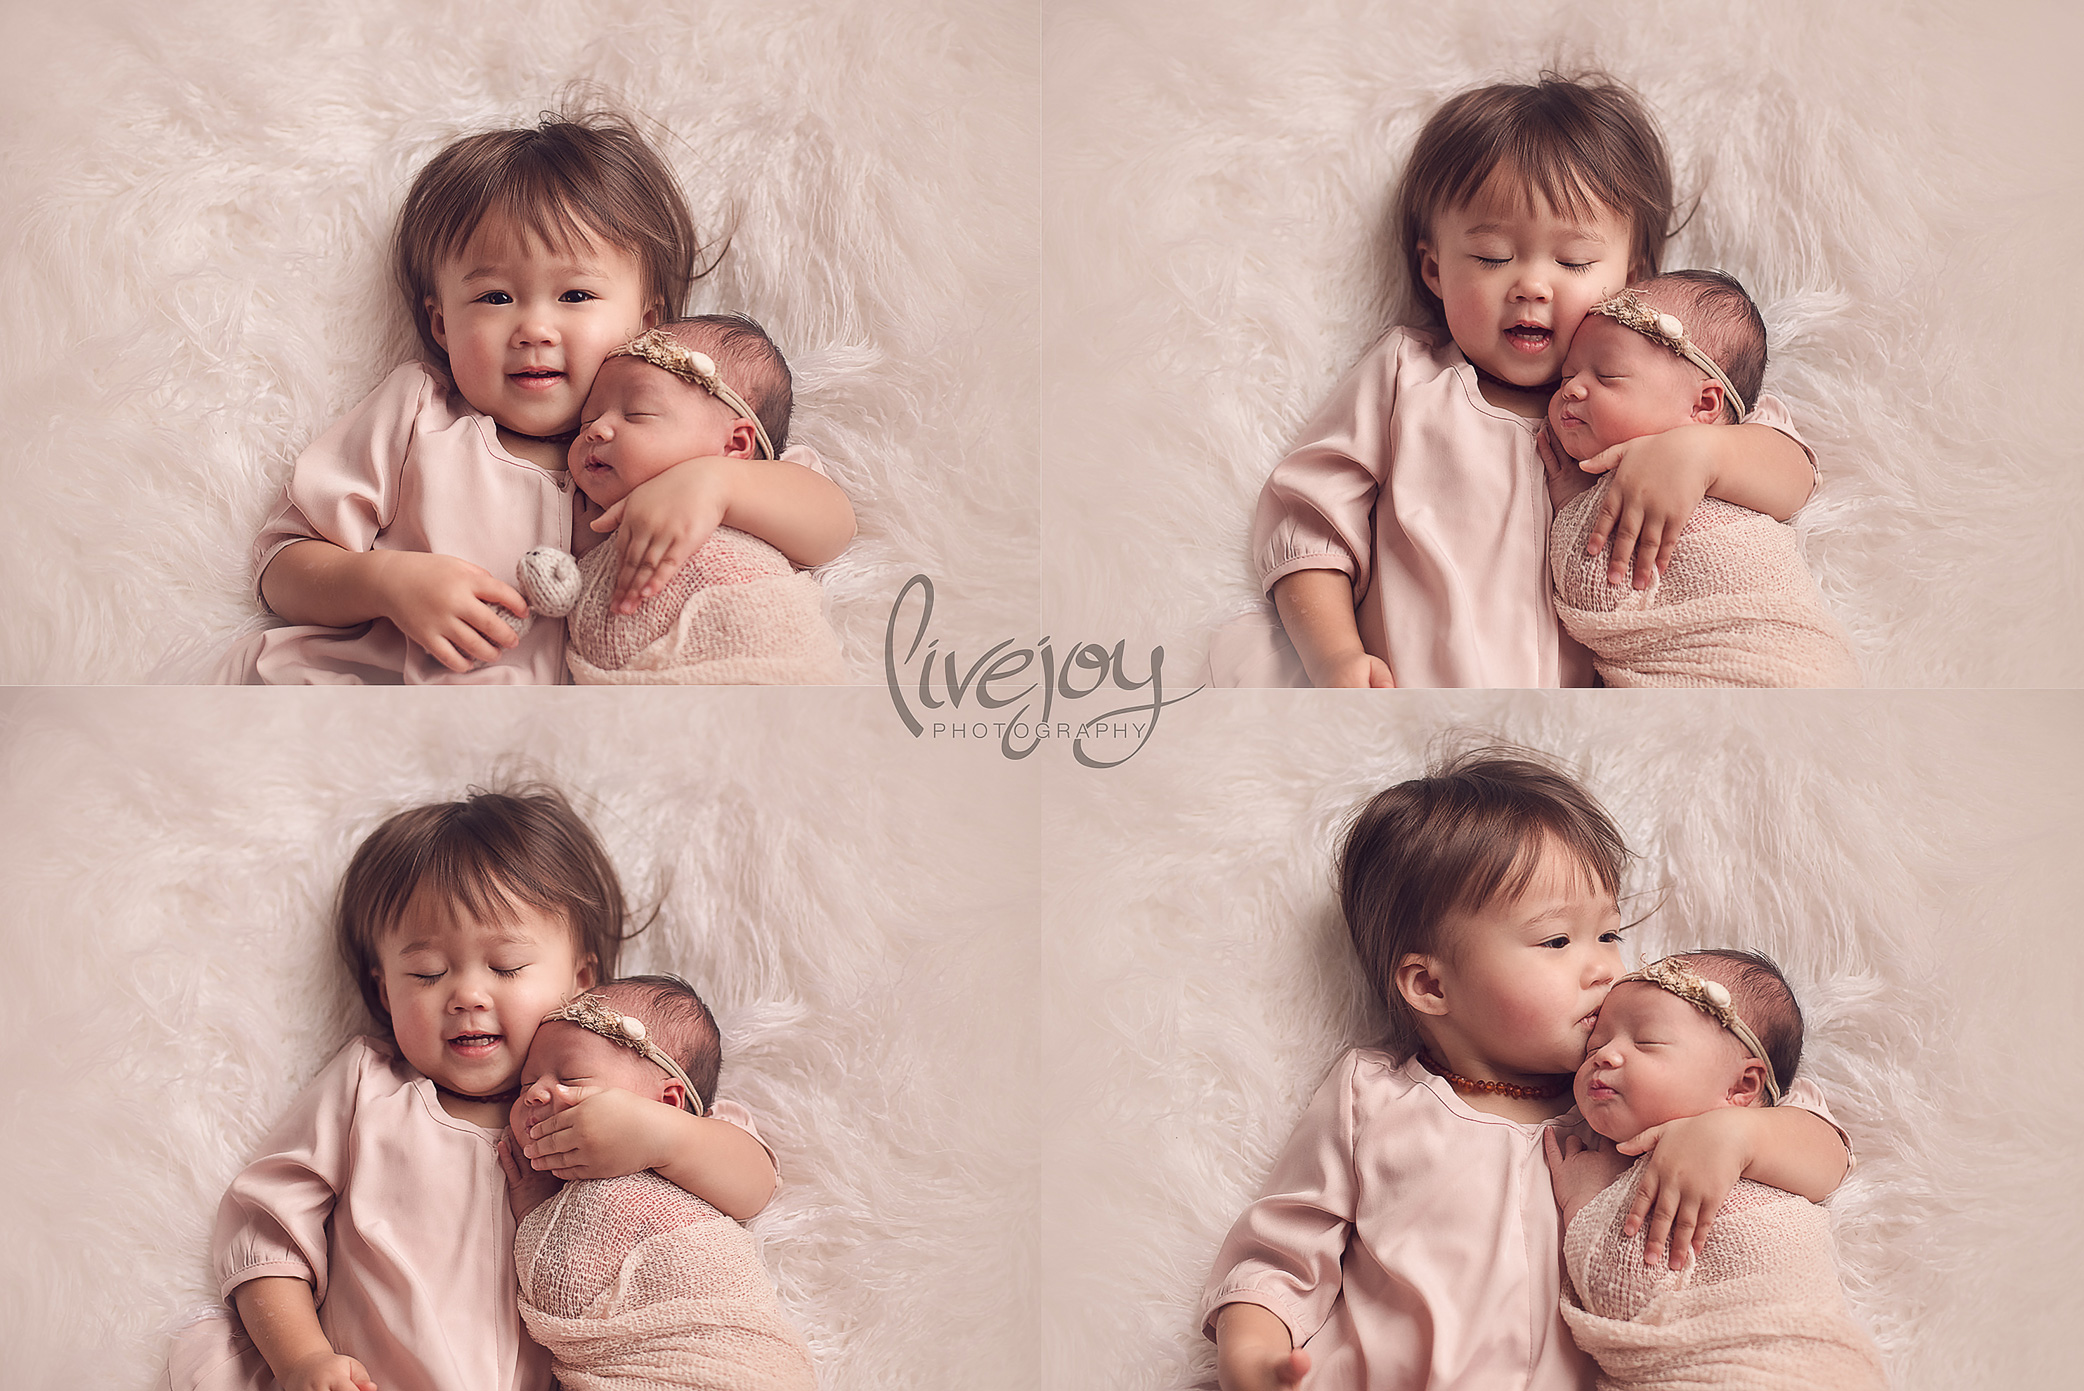 Newborn Photography with Siblings | LiveJoy Photography